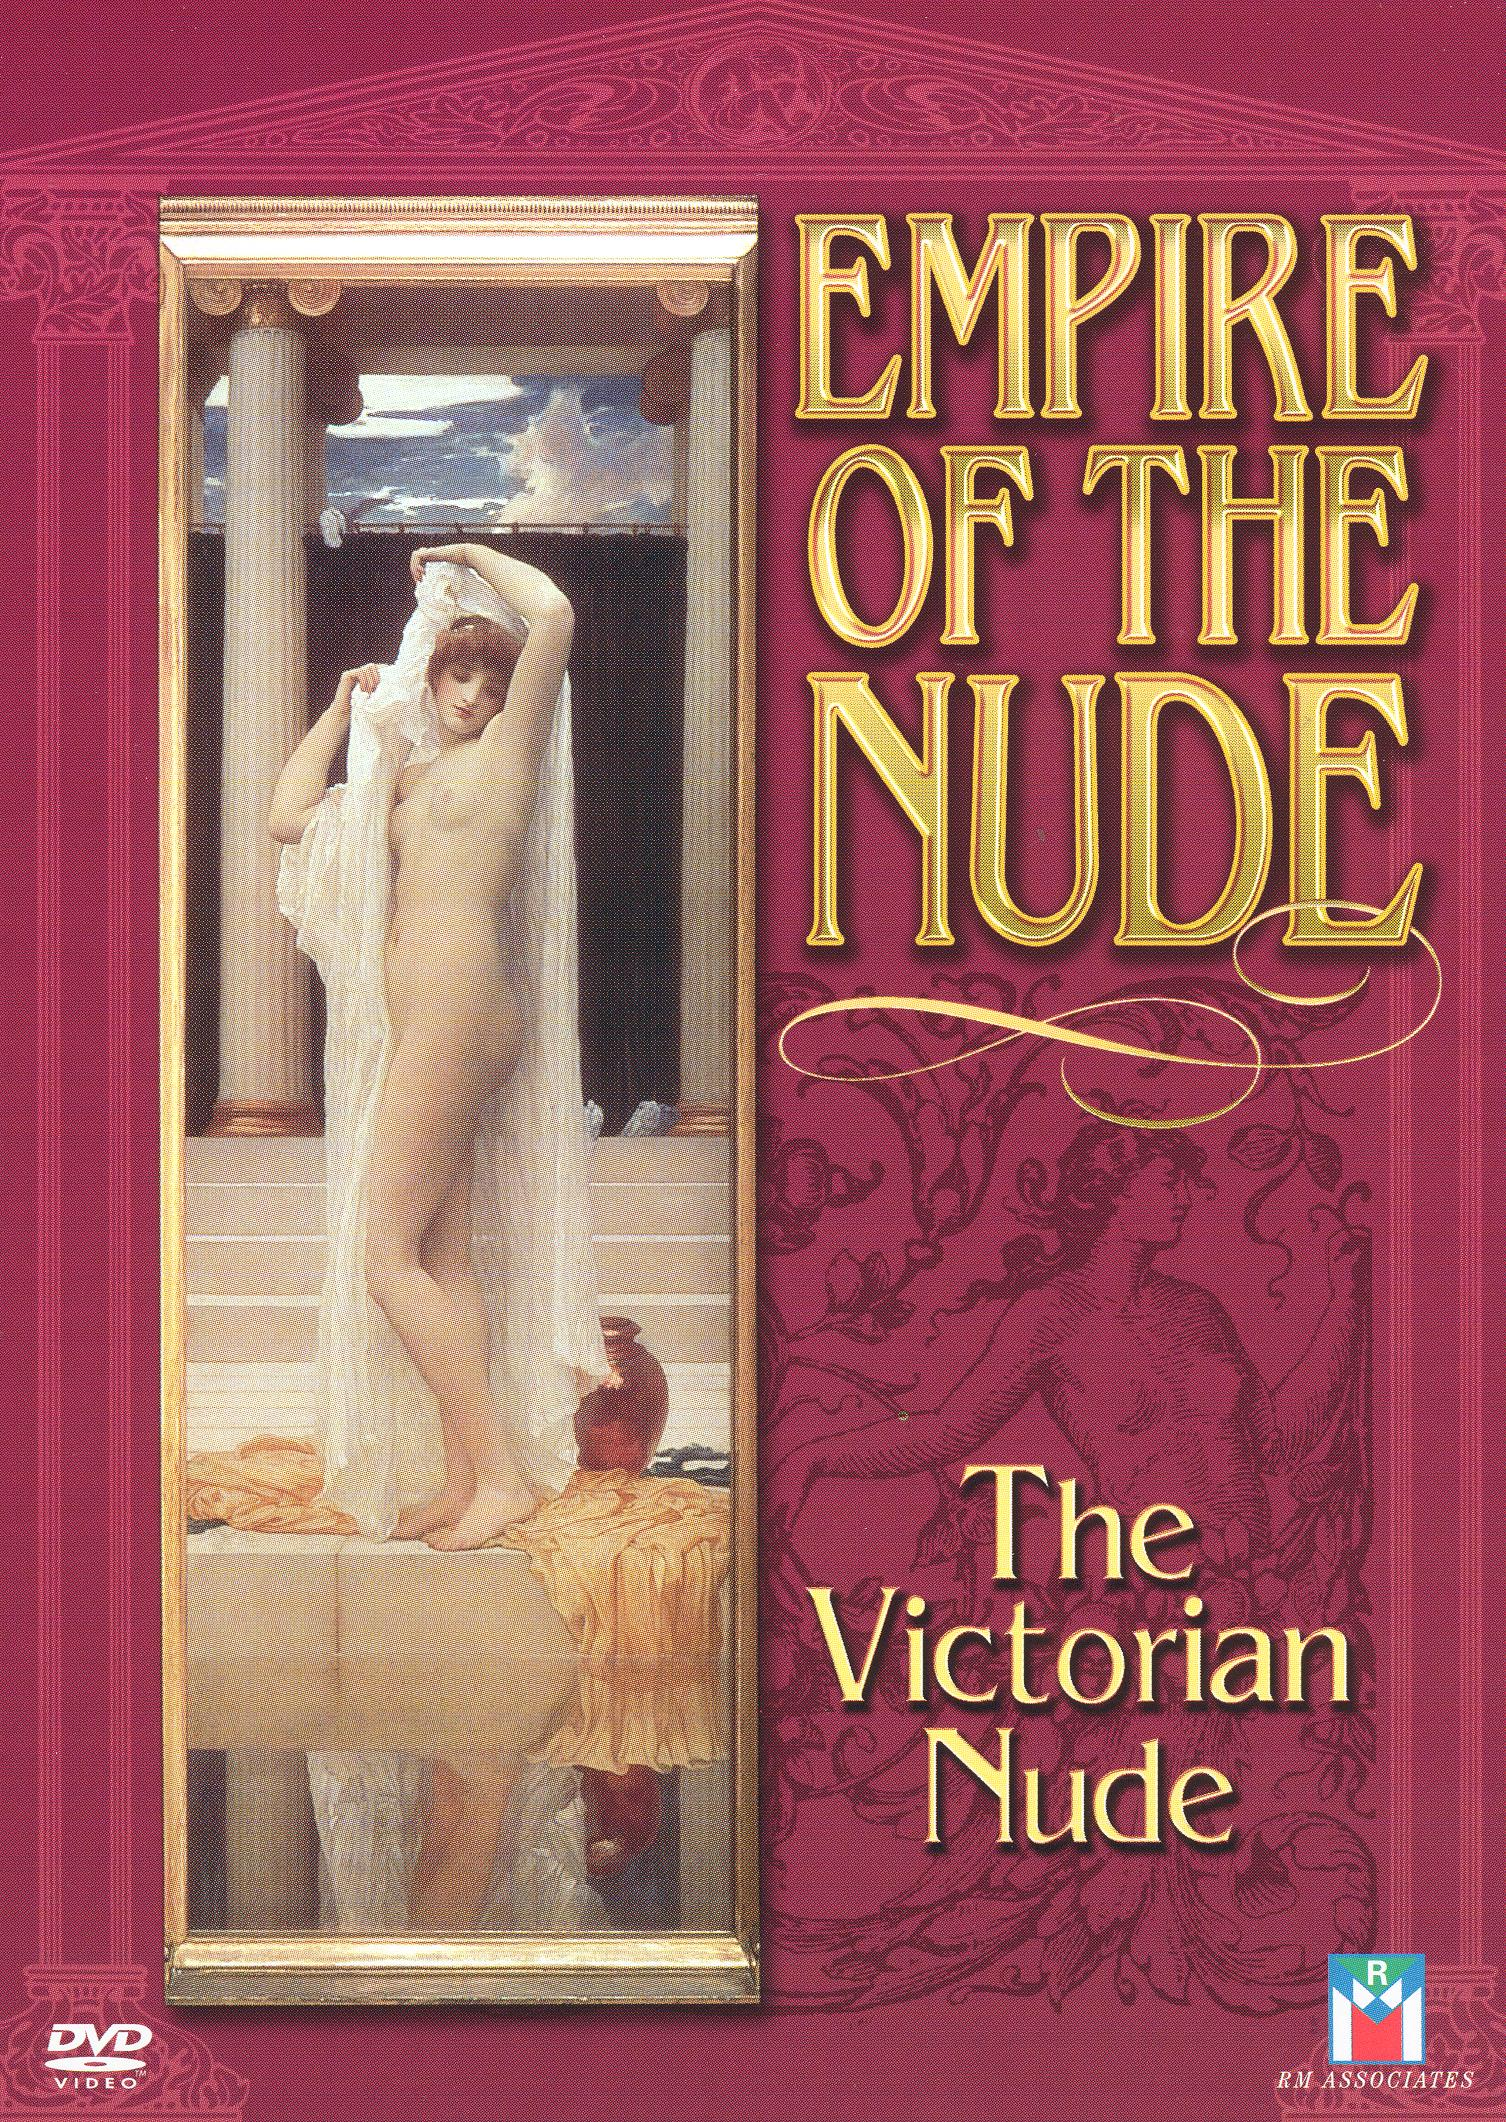 Empire of the Nude: The Victorian Nude